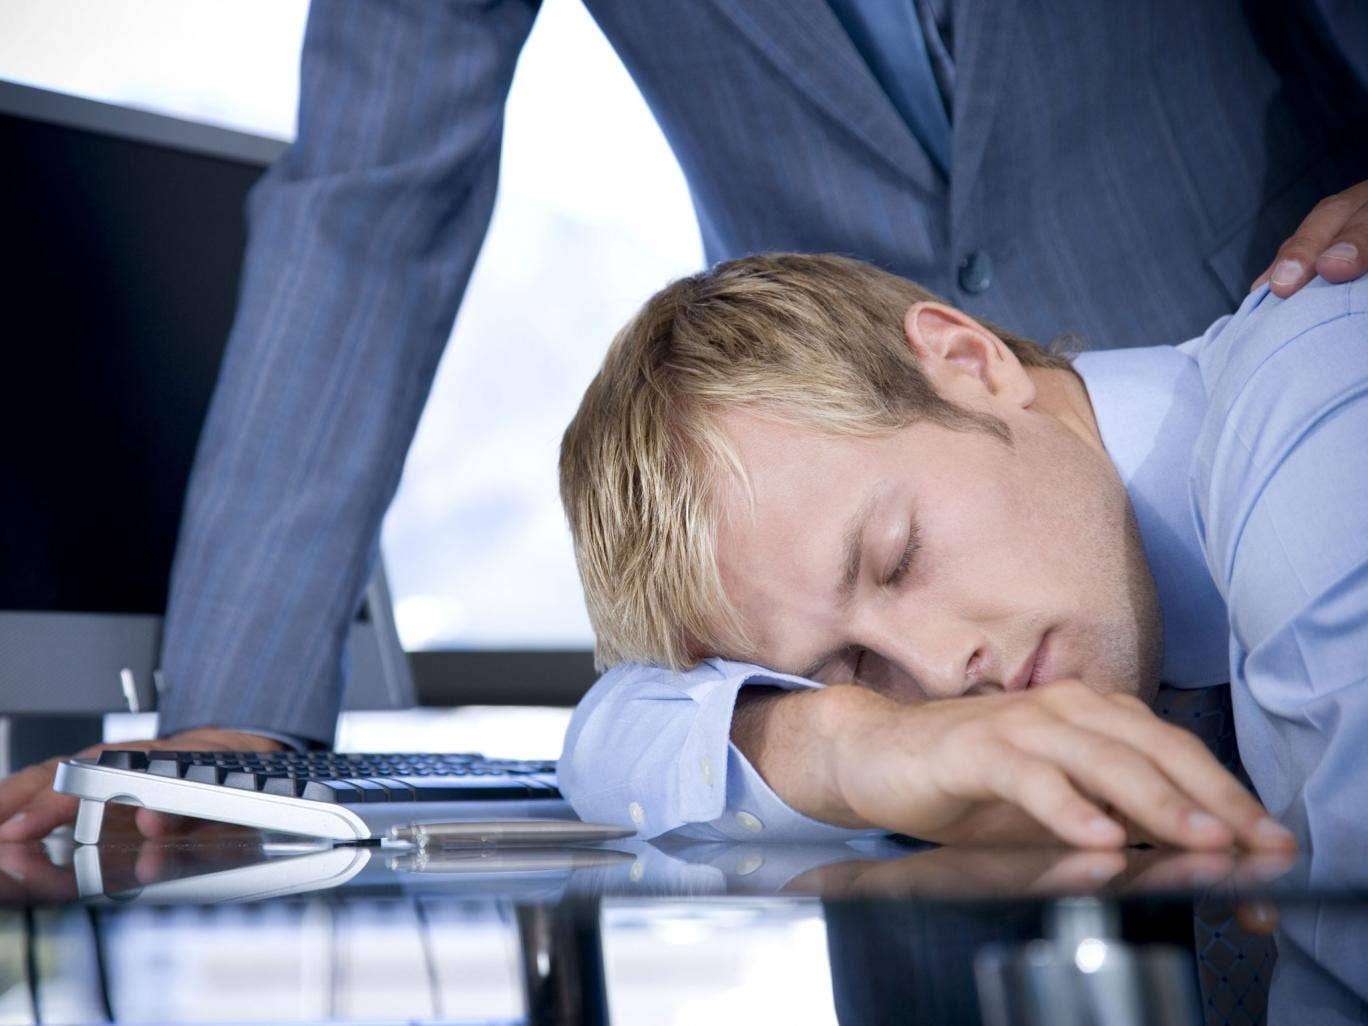 People who sleep the whole night through are more productive during the day